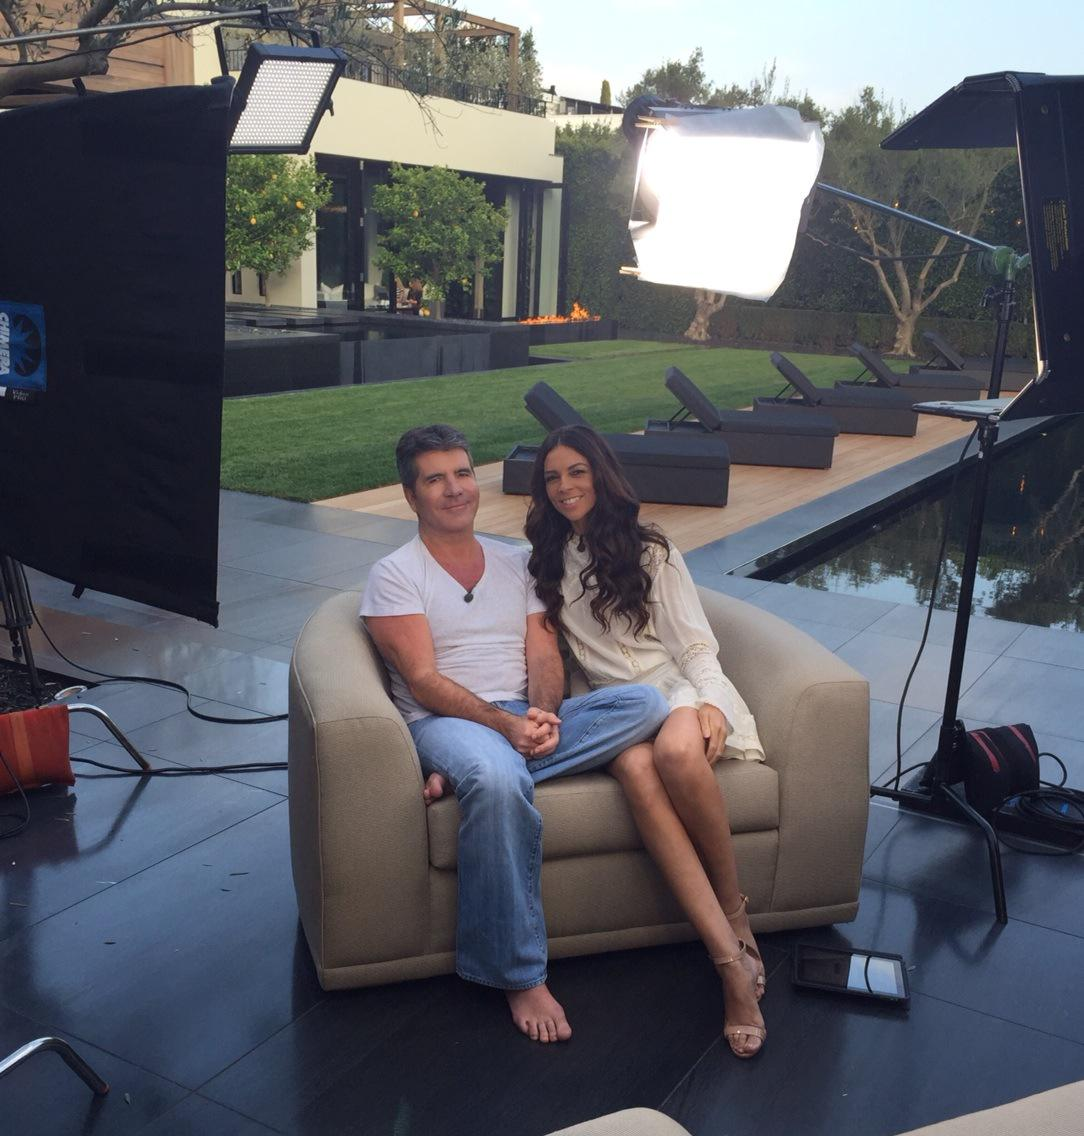 Tune into @extratv tonight to see my new interview with @SimonCowell http://t.co/fXqWE9A4X5